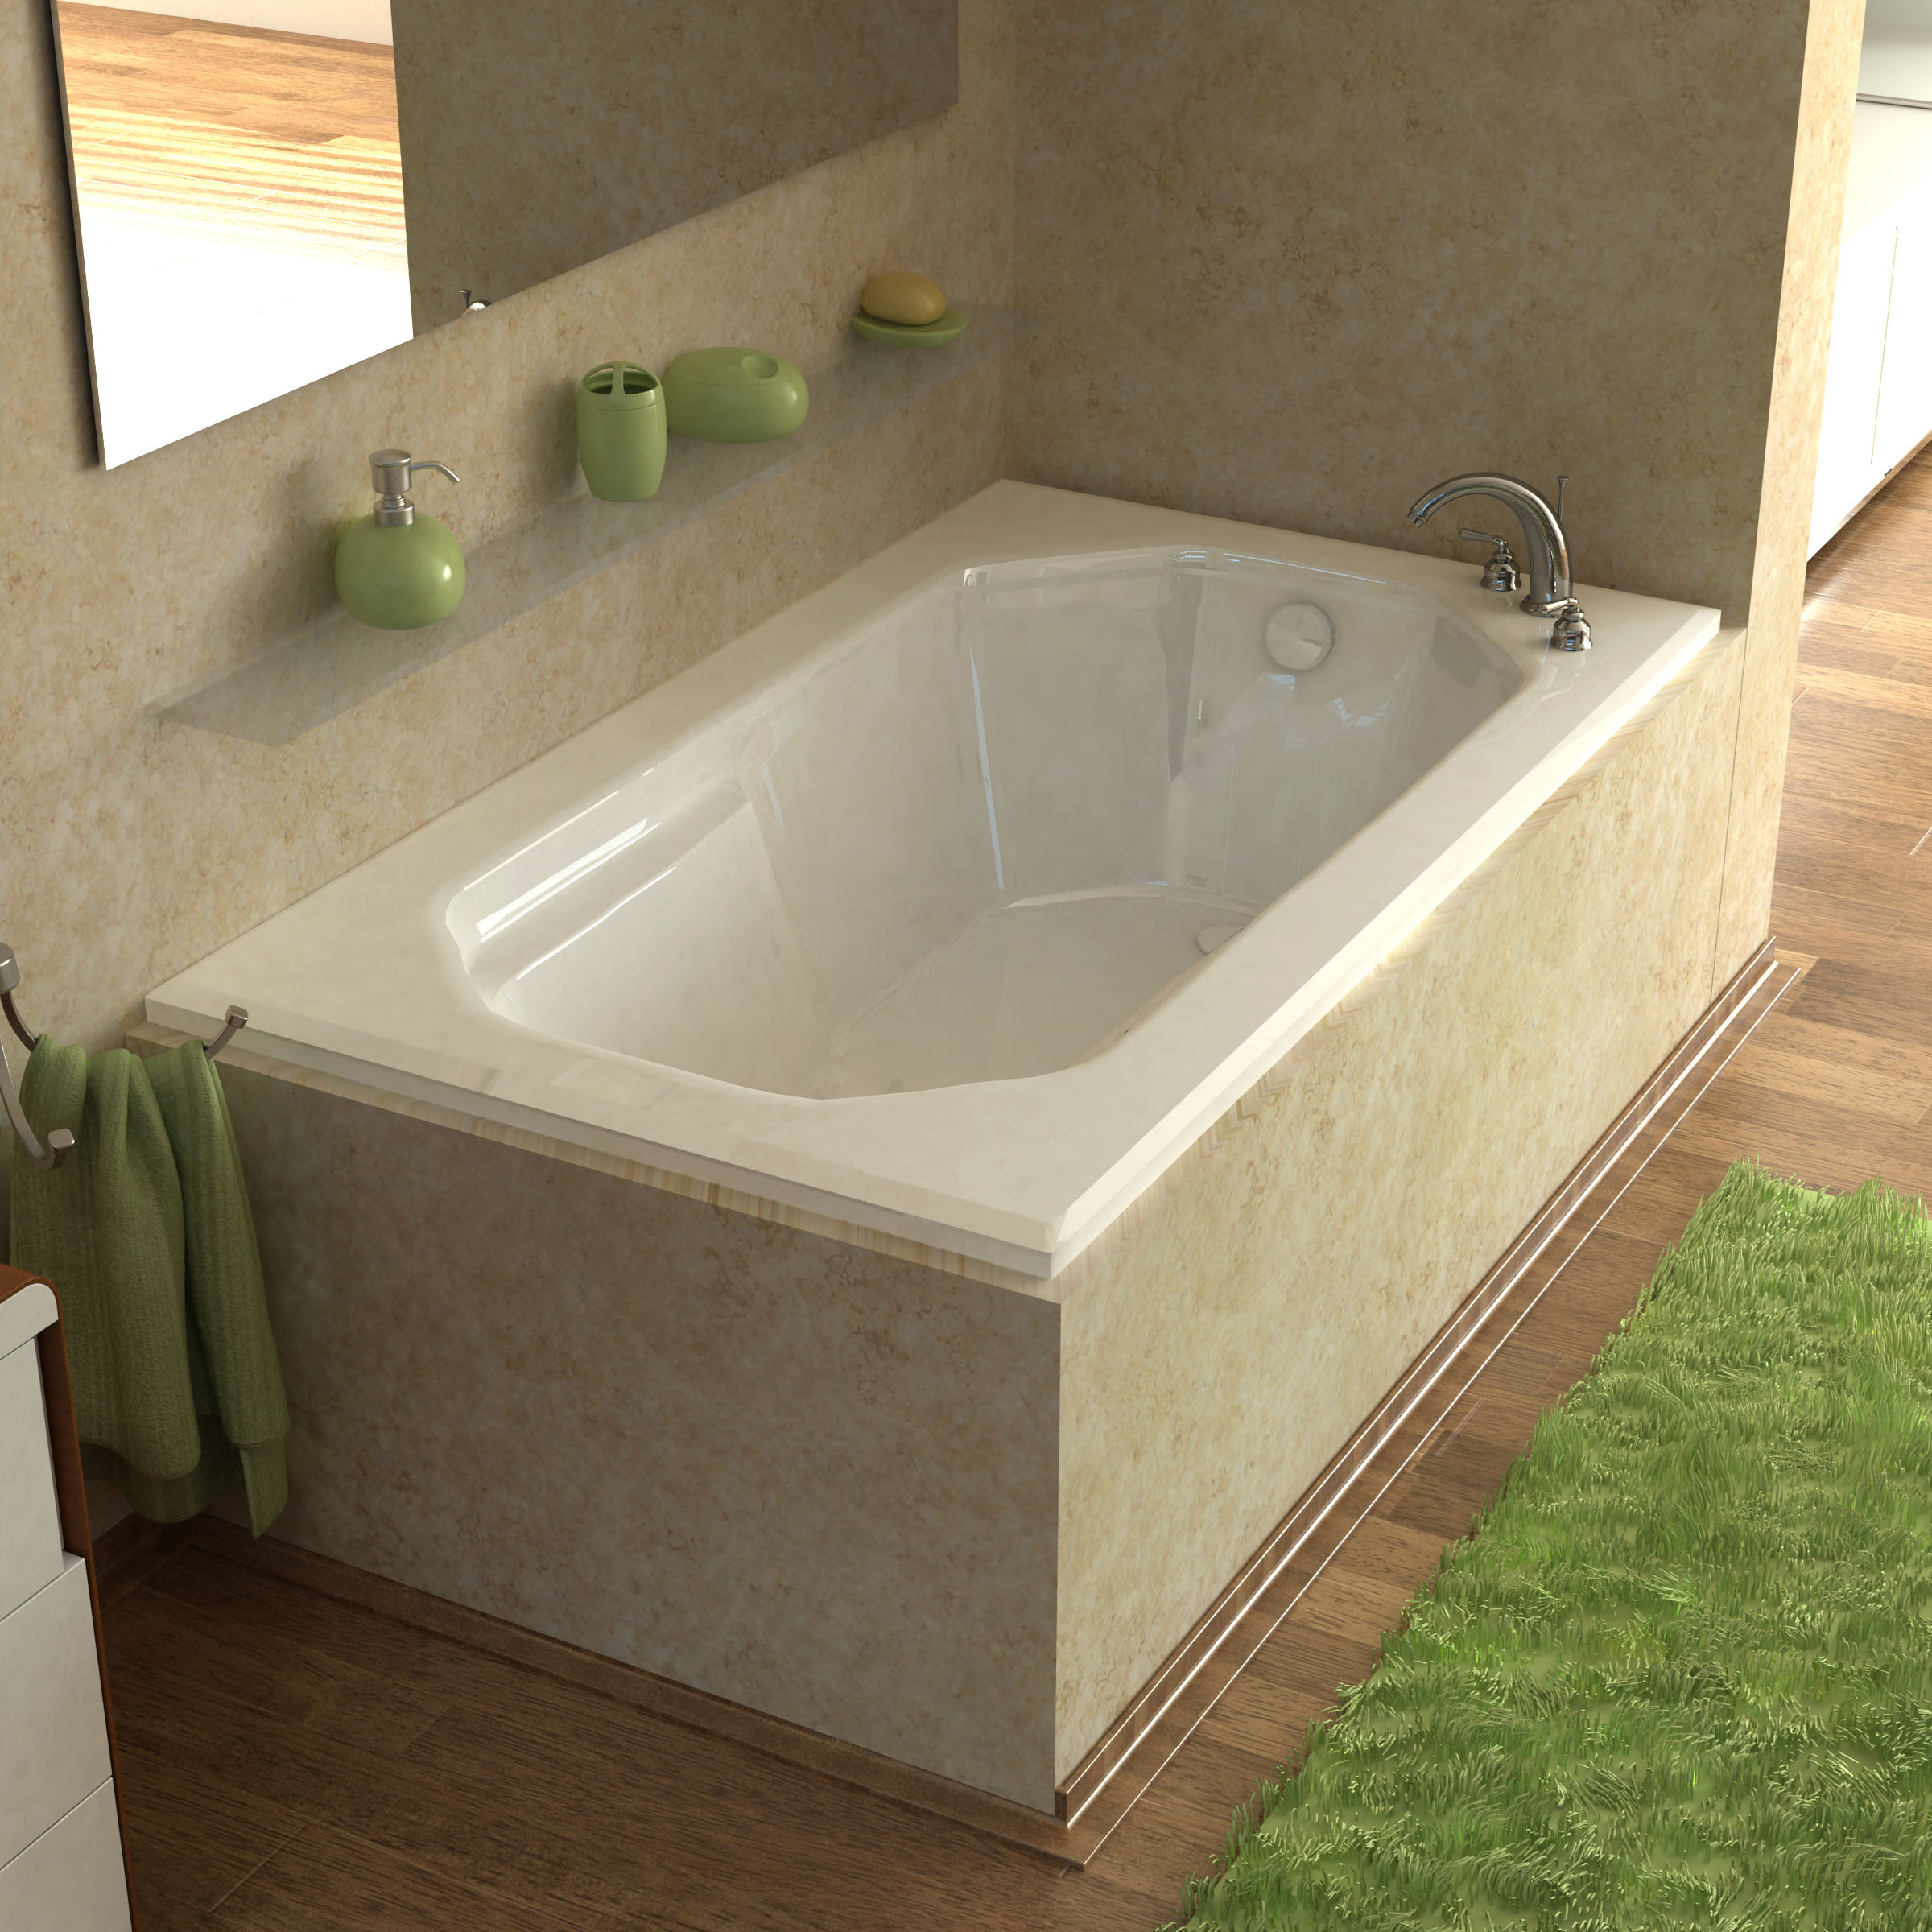 babies and soaking adxcomputer soaker tub lowes liner liners luxury delighted bath bathtubs bathtub acrylic deep jacuzzi for